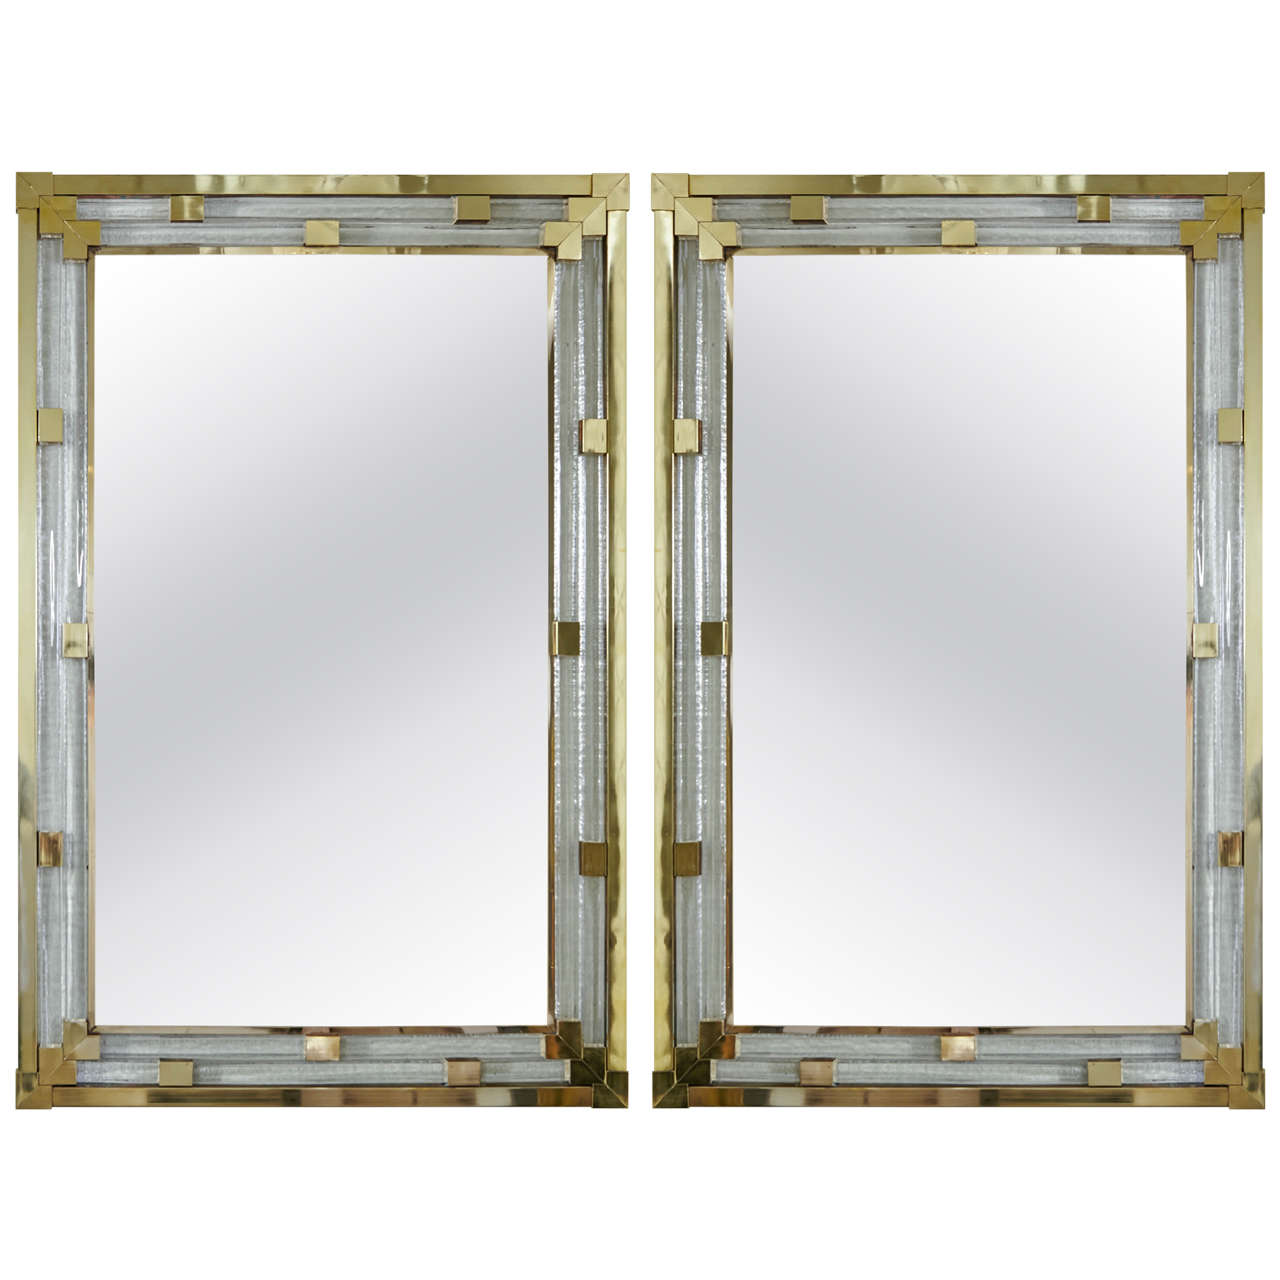 Pair of Italian Art Deco Style Mirrors in Molded Glass and Polished Brass